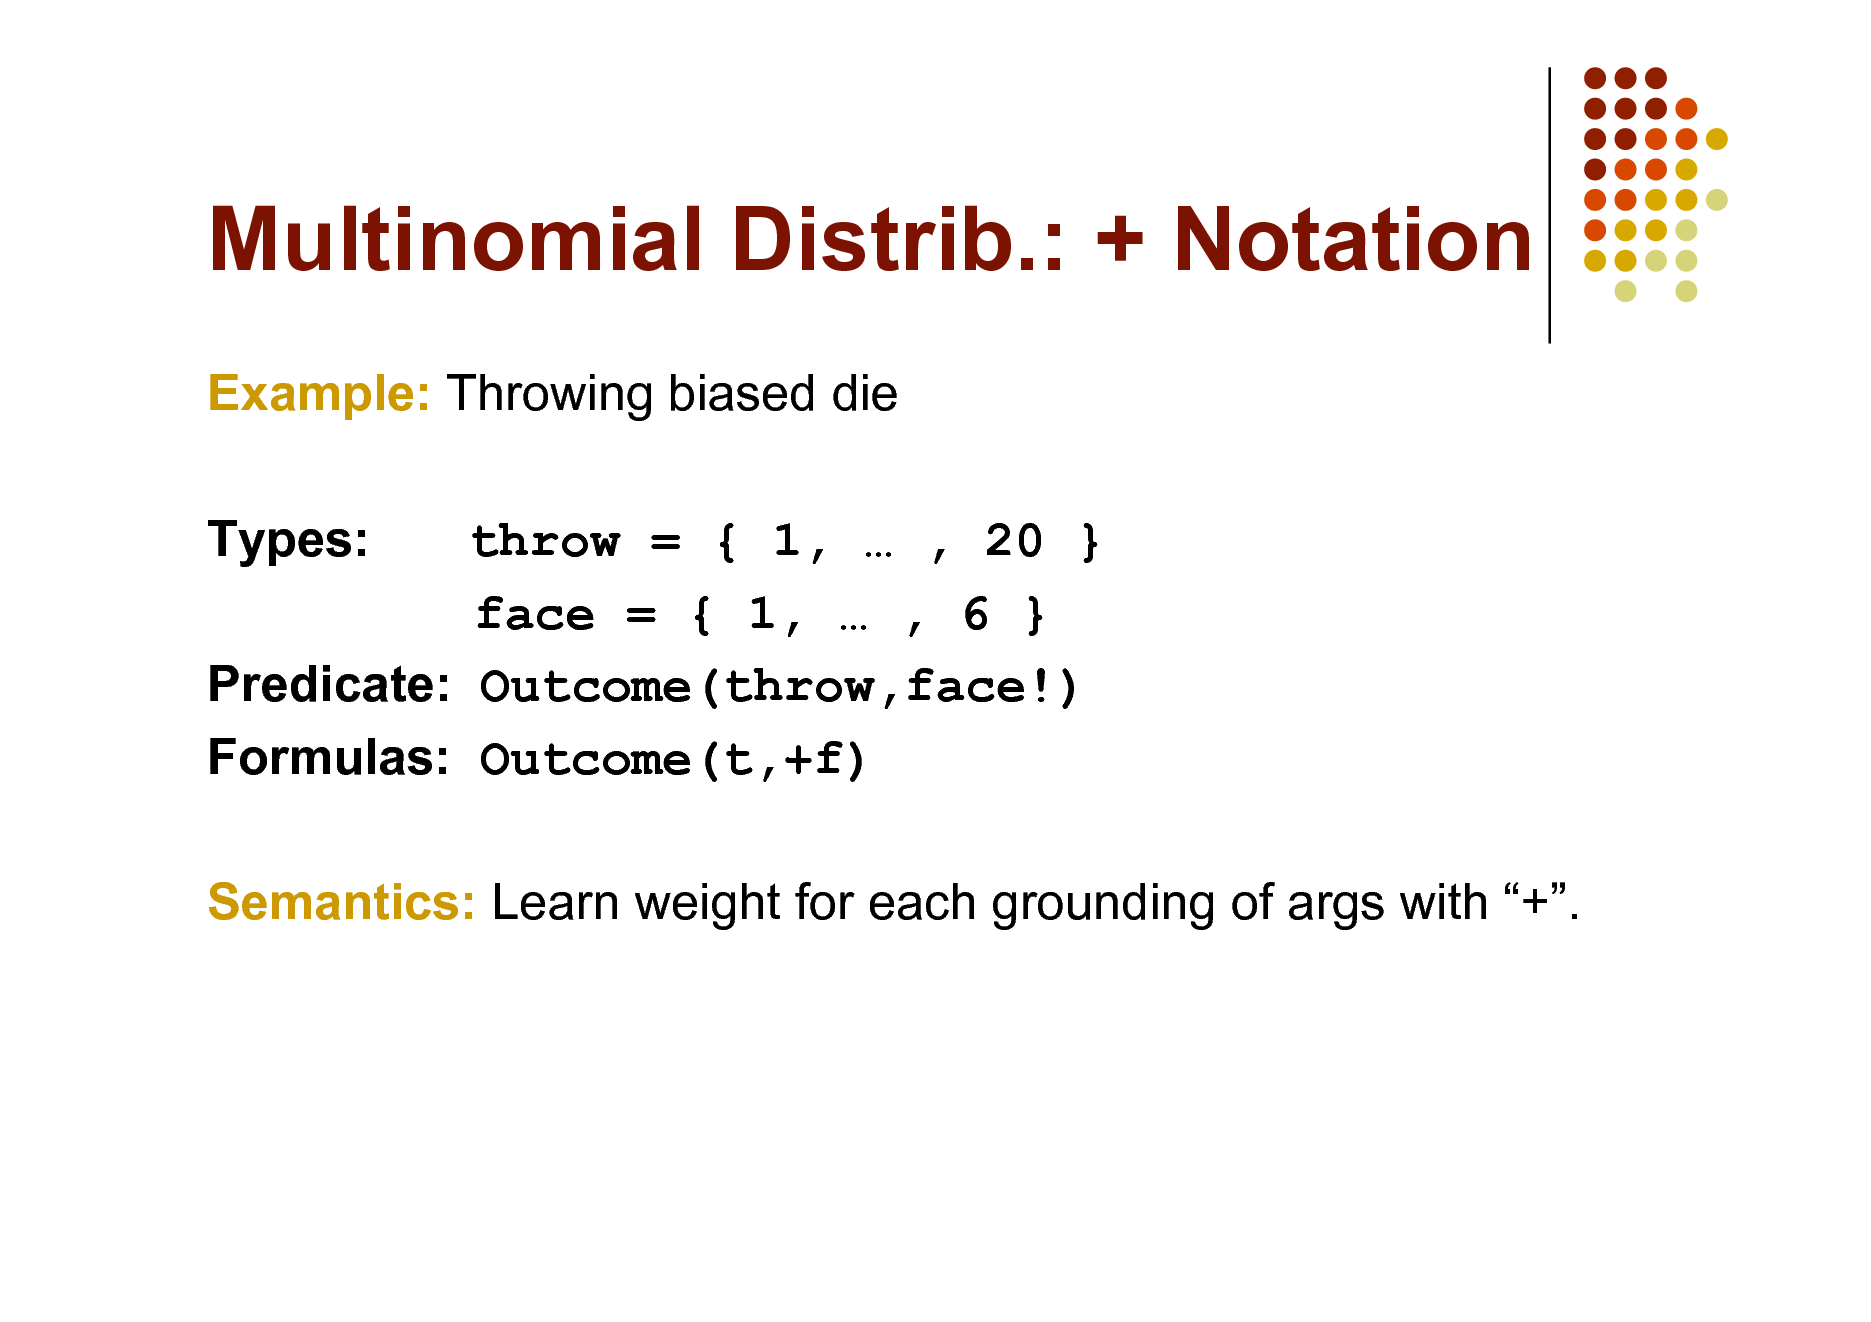 Slide: Multinomial Distrib.: + Notation Example: Throwing biased die Types: throw = { 1,  , 20 } face = { 1,  , 6 } Predicate: Outcome(throw,face!) Formulas: Outcome(t,+f) Semantics: Learn weight for each grounding of args with +.